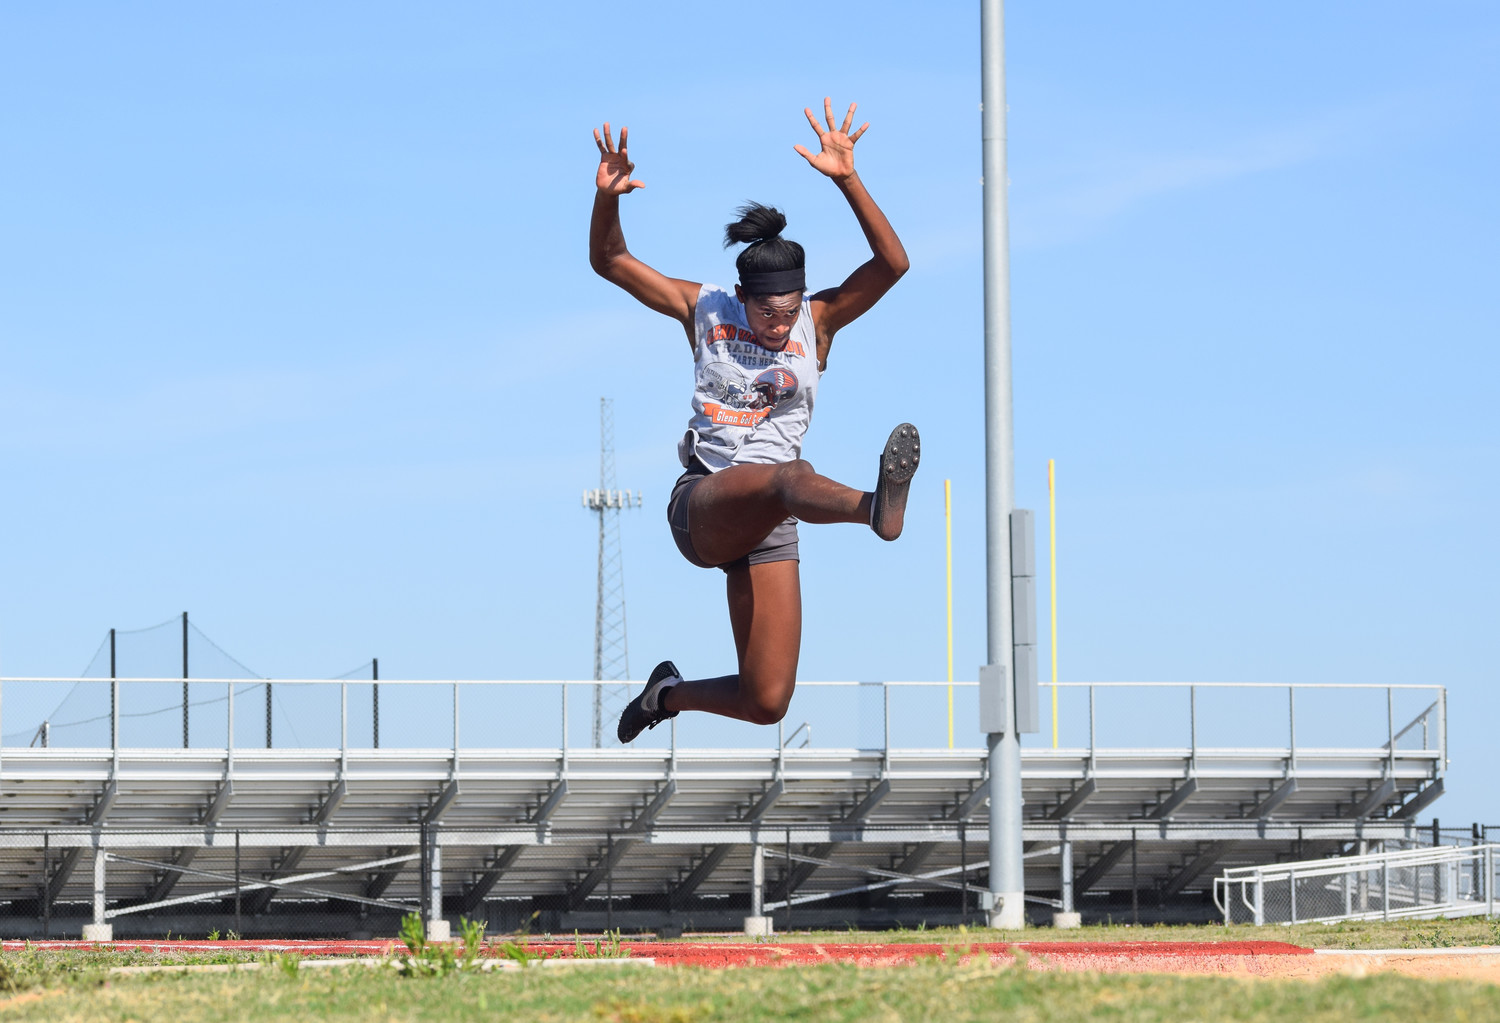 Glenn sophomore Gabby Thomas qualified for the state track and field meet in three events: the long jump, triple jump and 100-meter dash.